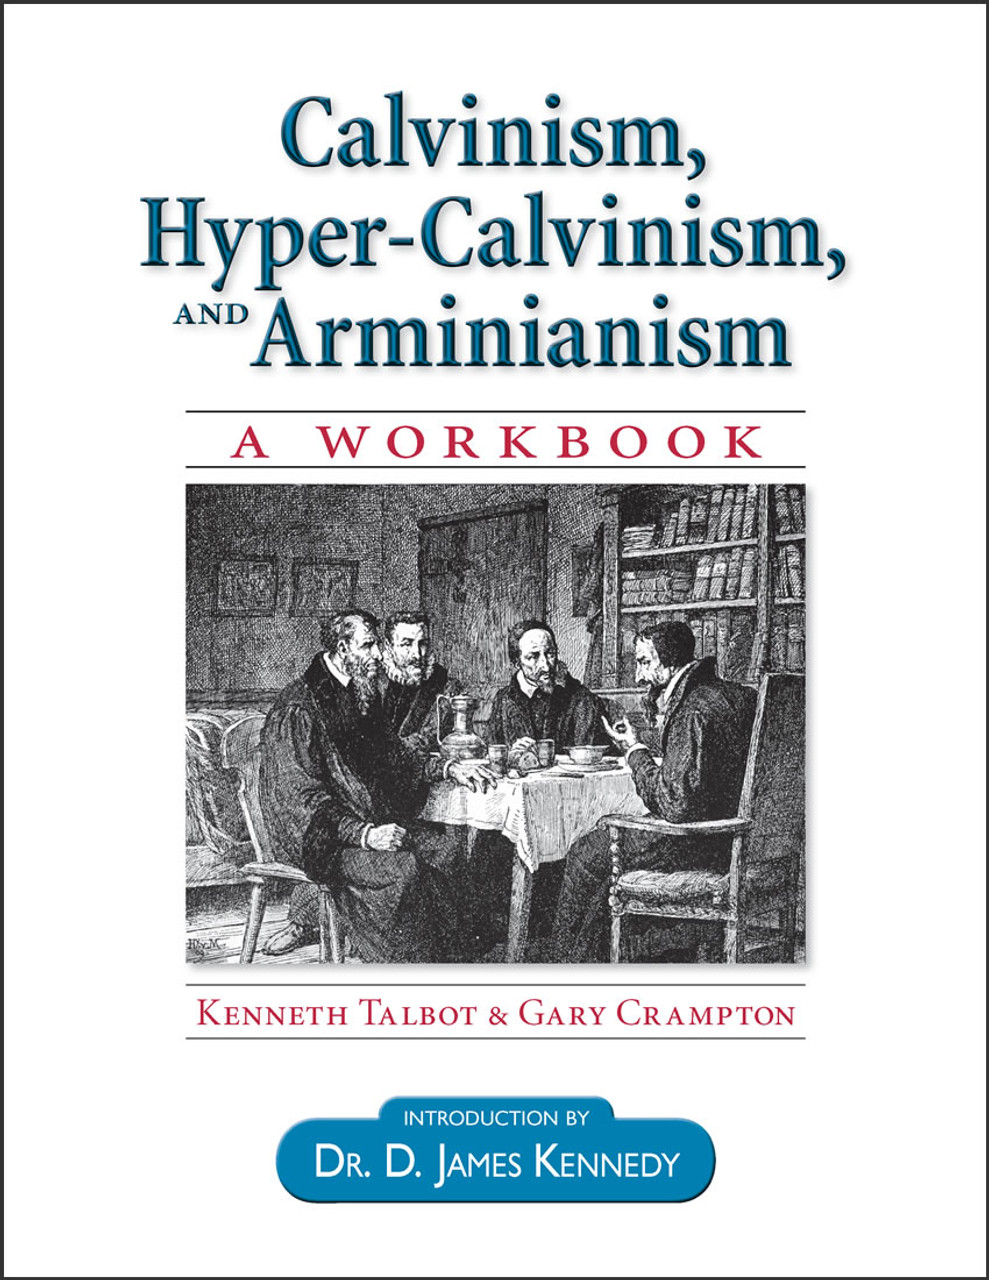 Calvinism, Hyper-Calvinism, and Arminianism – Recommended for those who purchased an 11th grade kit containing Manual of Christian Doctrine.